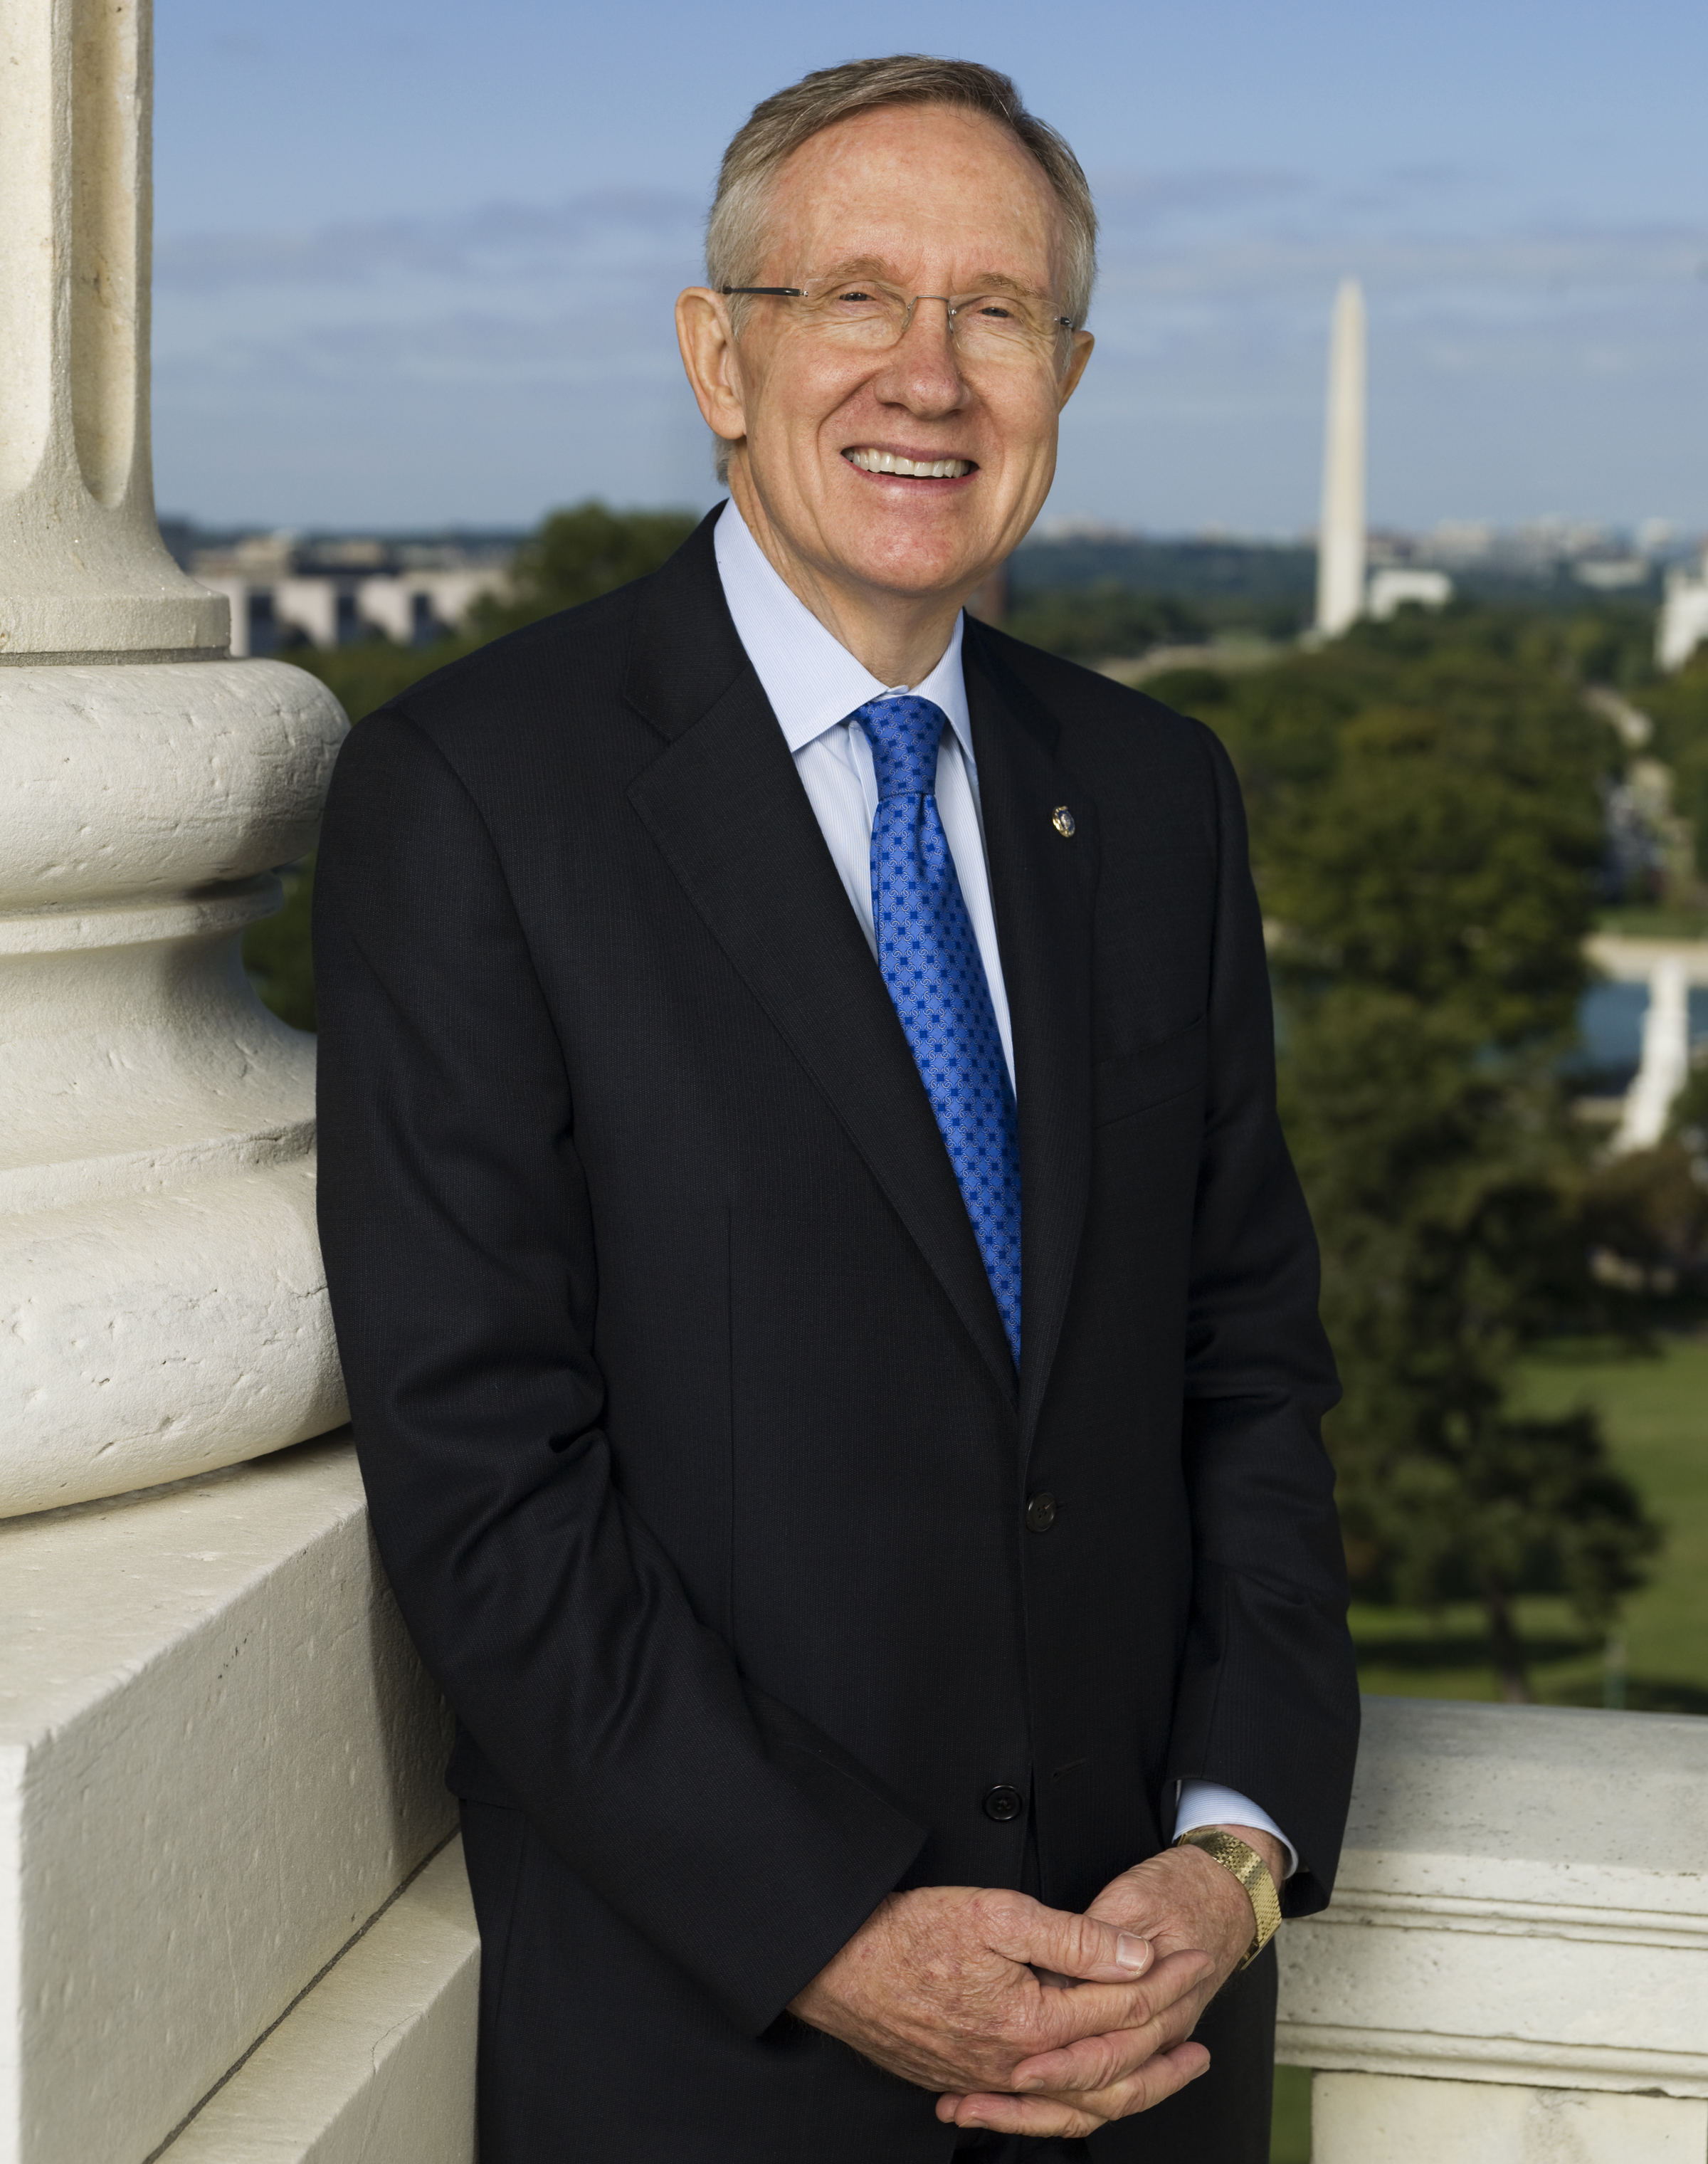 The 80-year old son of father Harry Vincent Reid and mother Inez Orena Reid Harry Reid in 2020 photo. Harry Reid earned a million dollar salary - leaving the net worth at 10 million in 2020